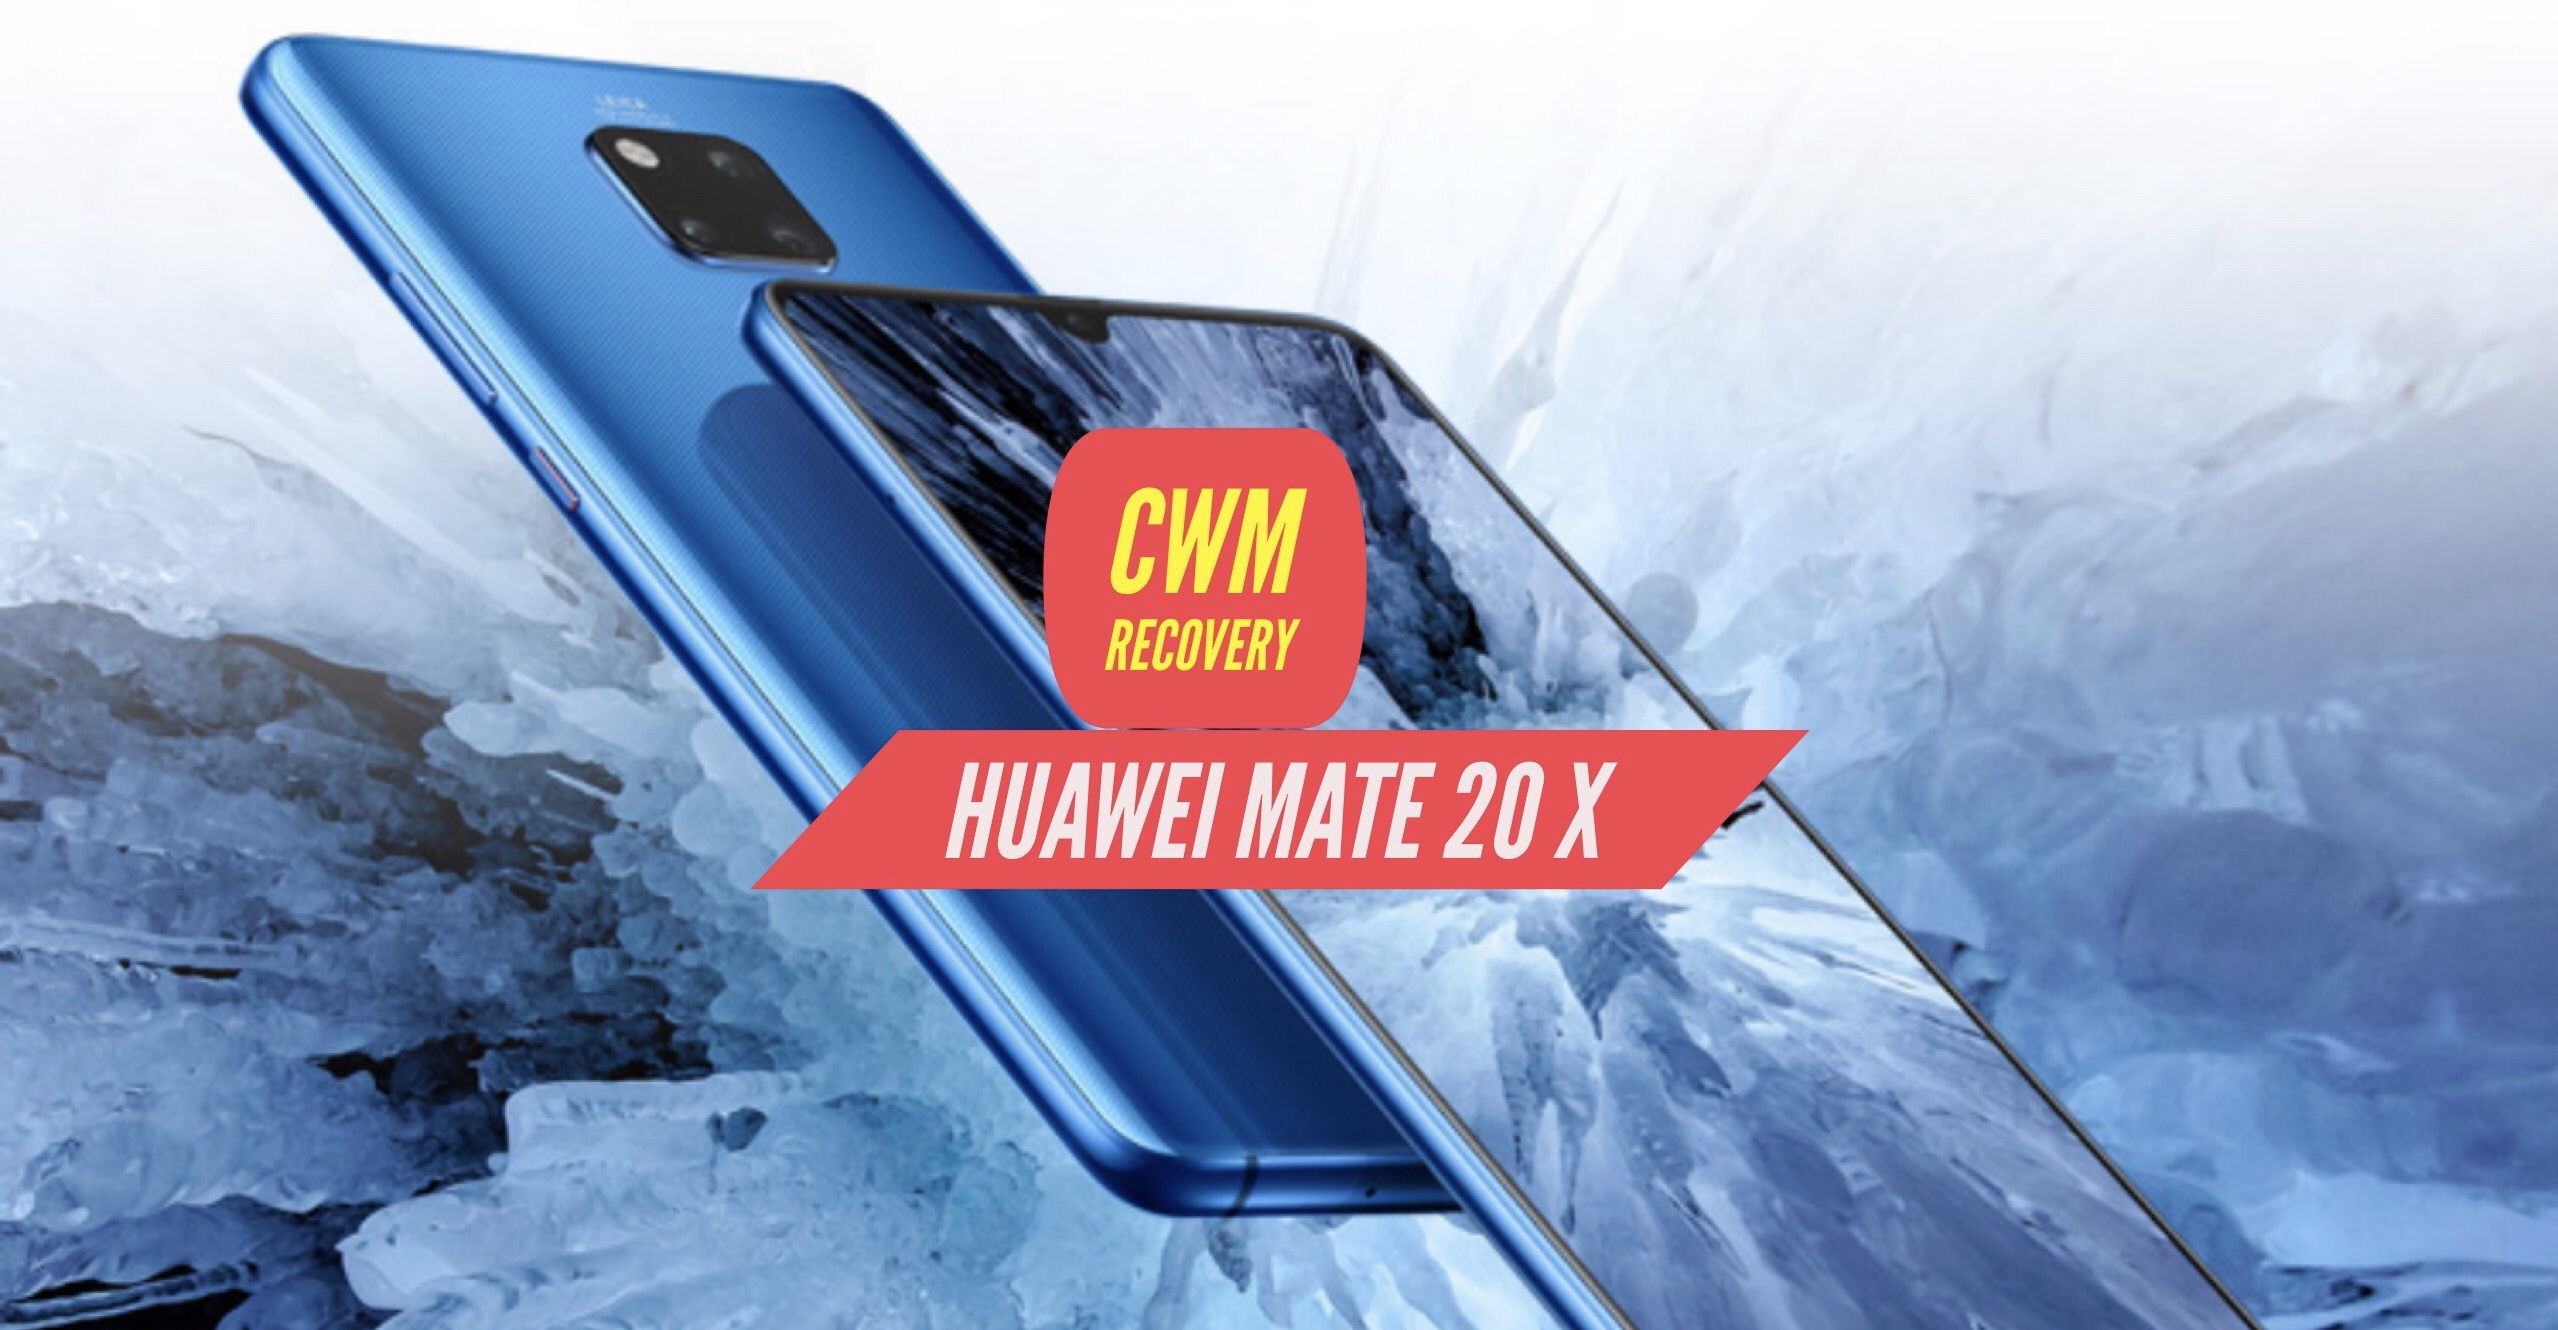 How to Install CWM Recovery on Huawei Mate 20 X? Tutorial Guide!